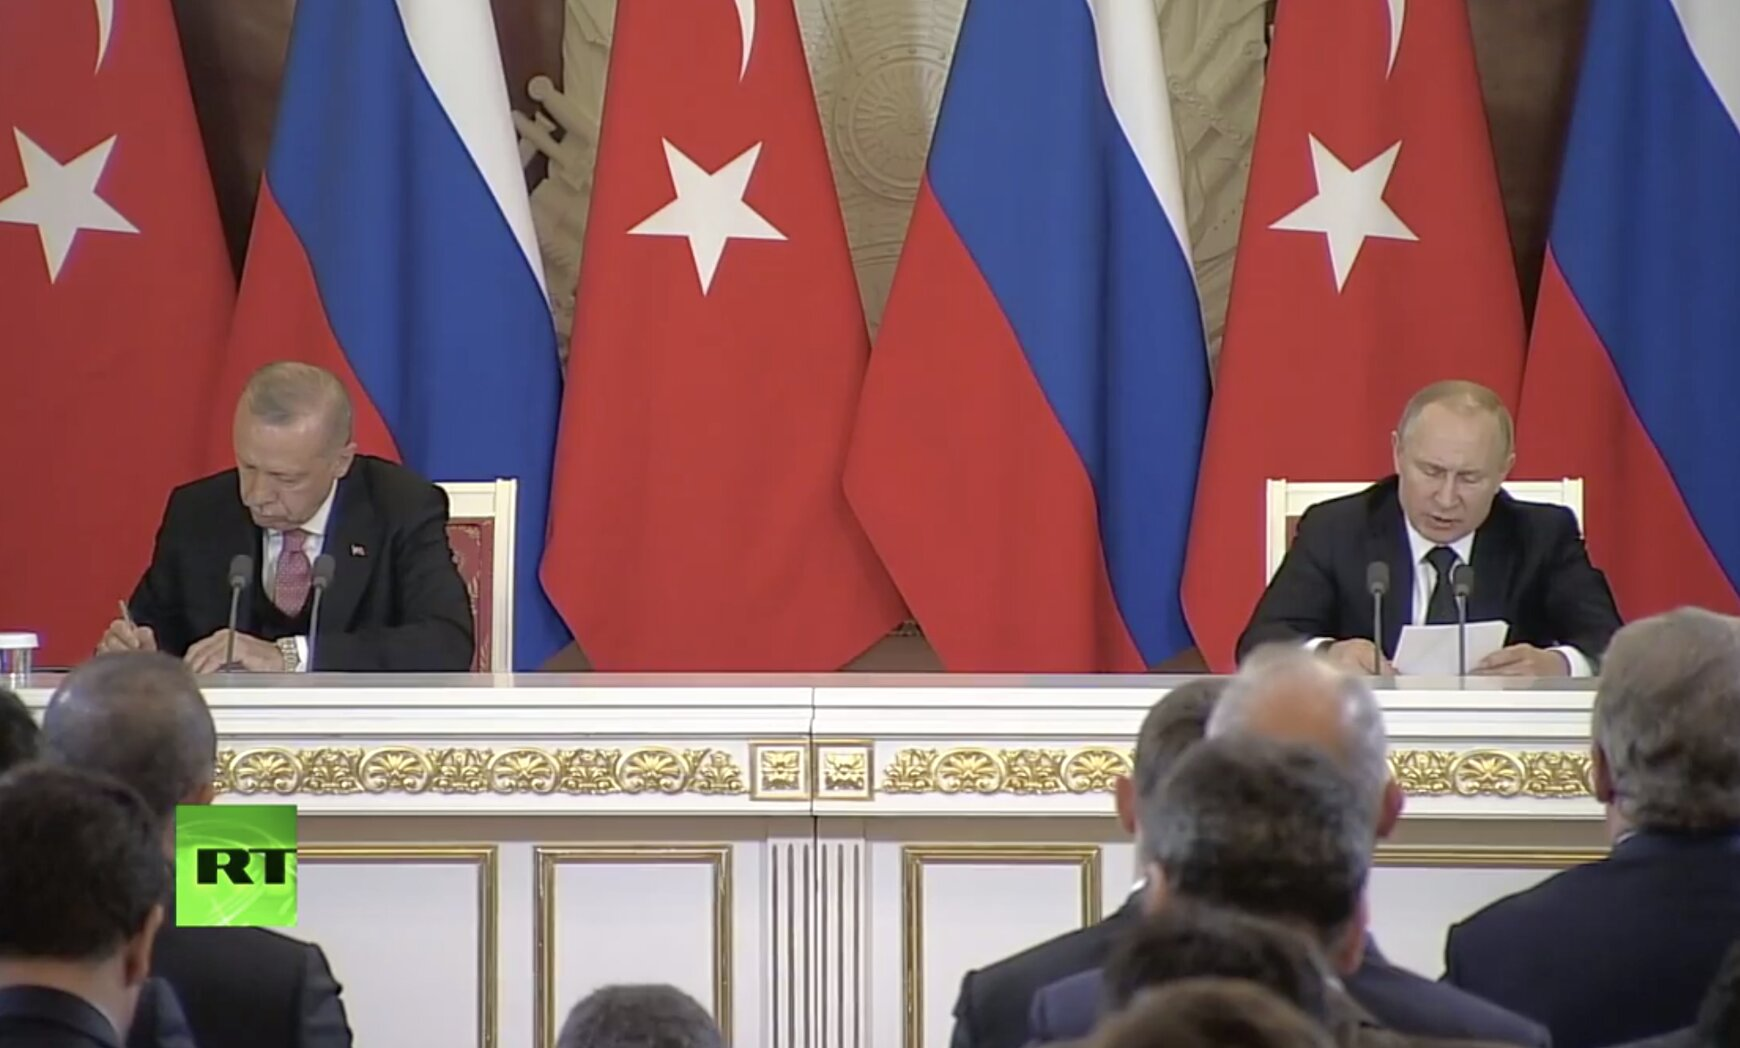 Putin and Erdogan hold joint press conference